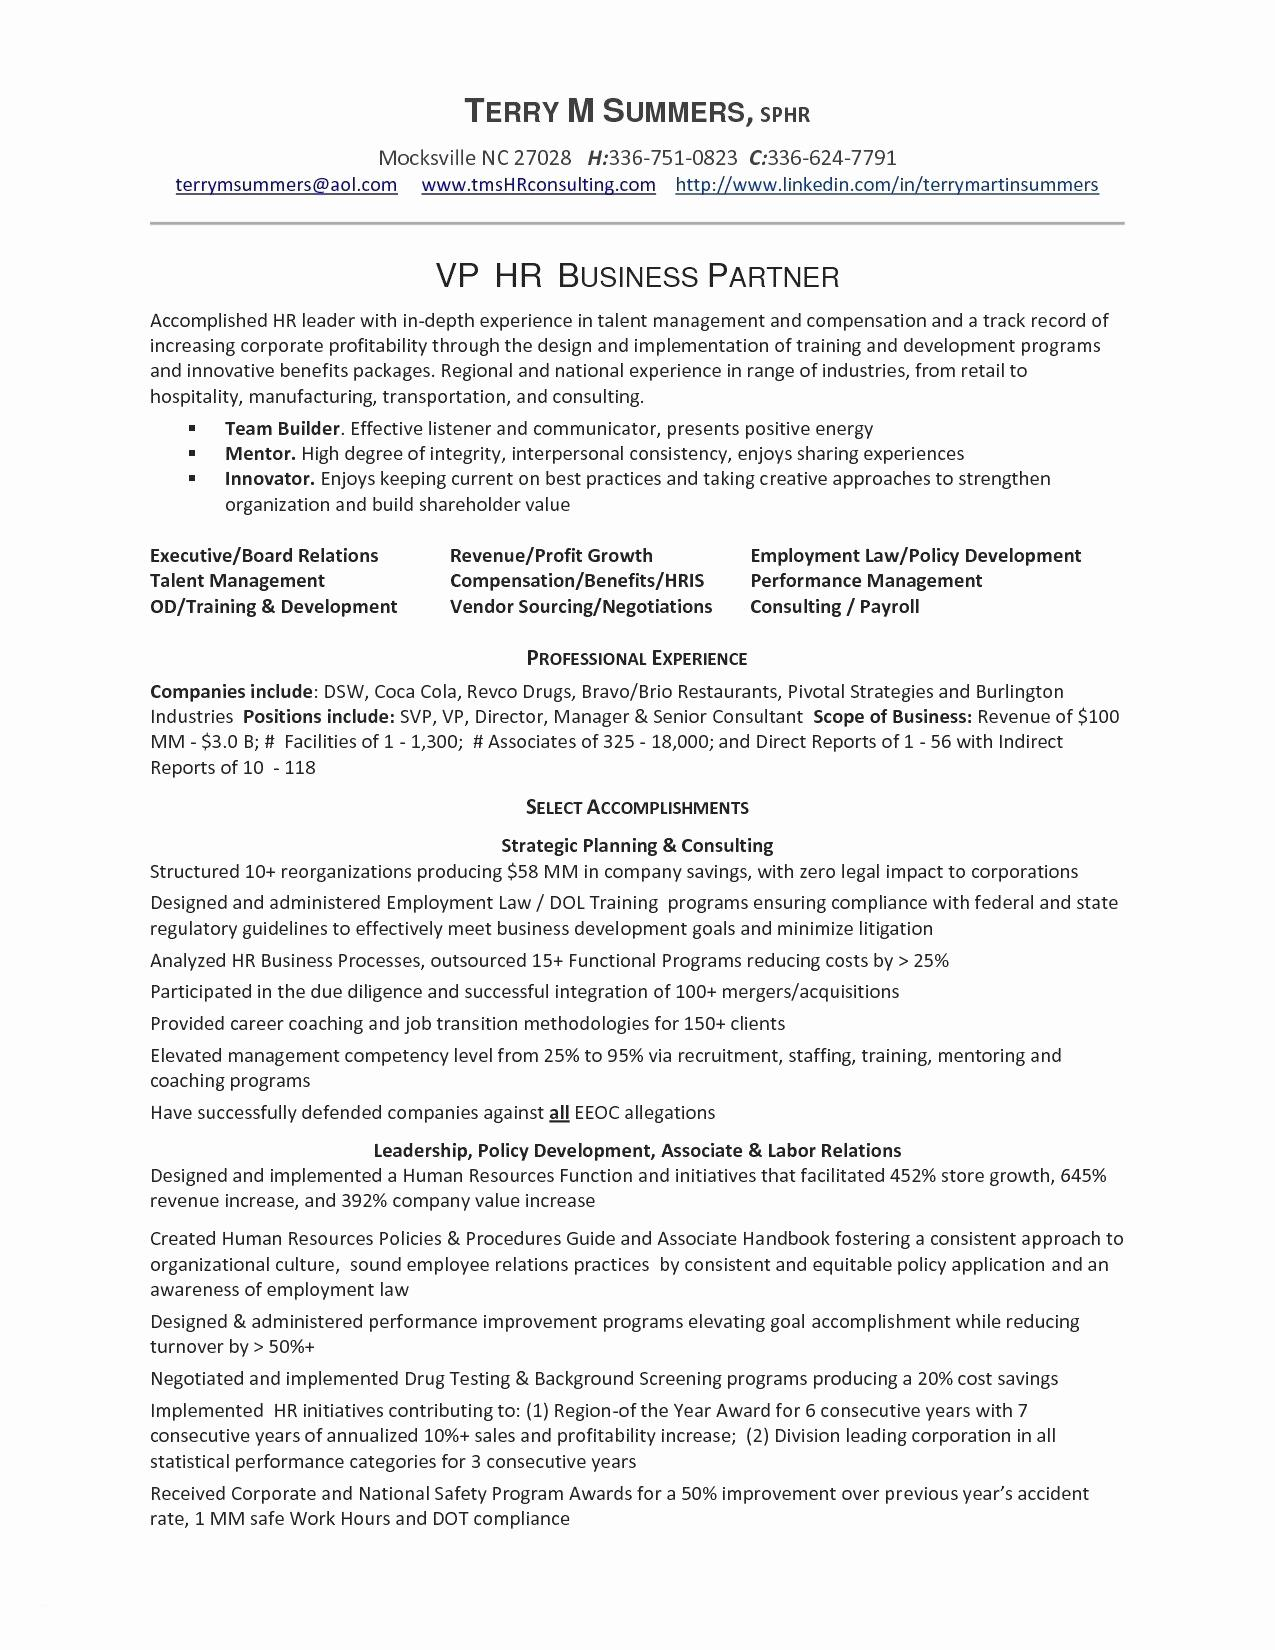 Best Administrative assistant Resume - 47 Luxury Sample Cover Letter Administrative assistant Resume